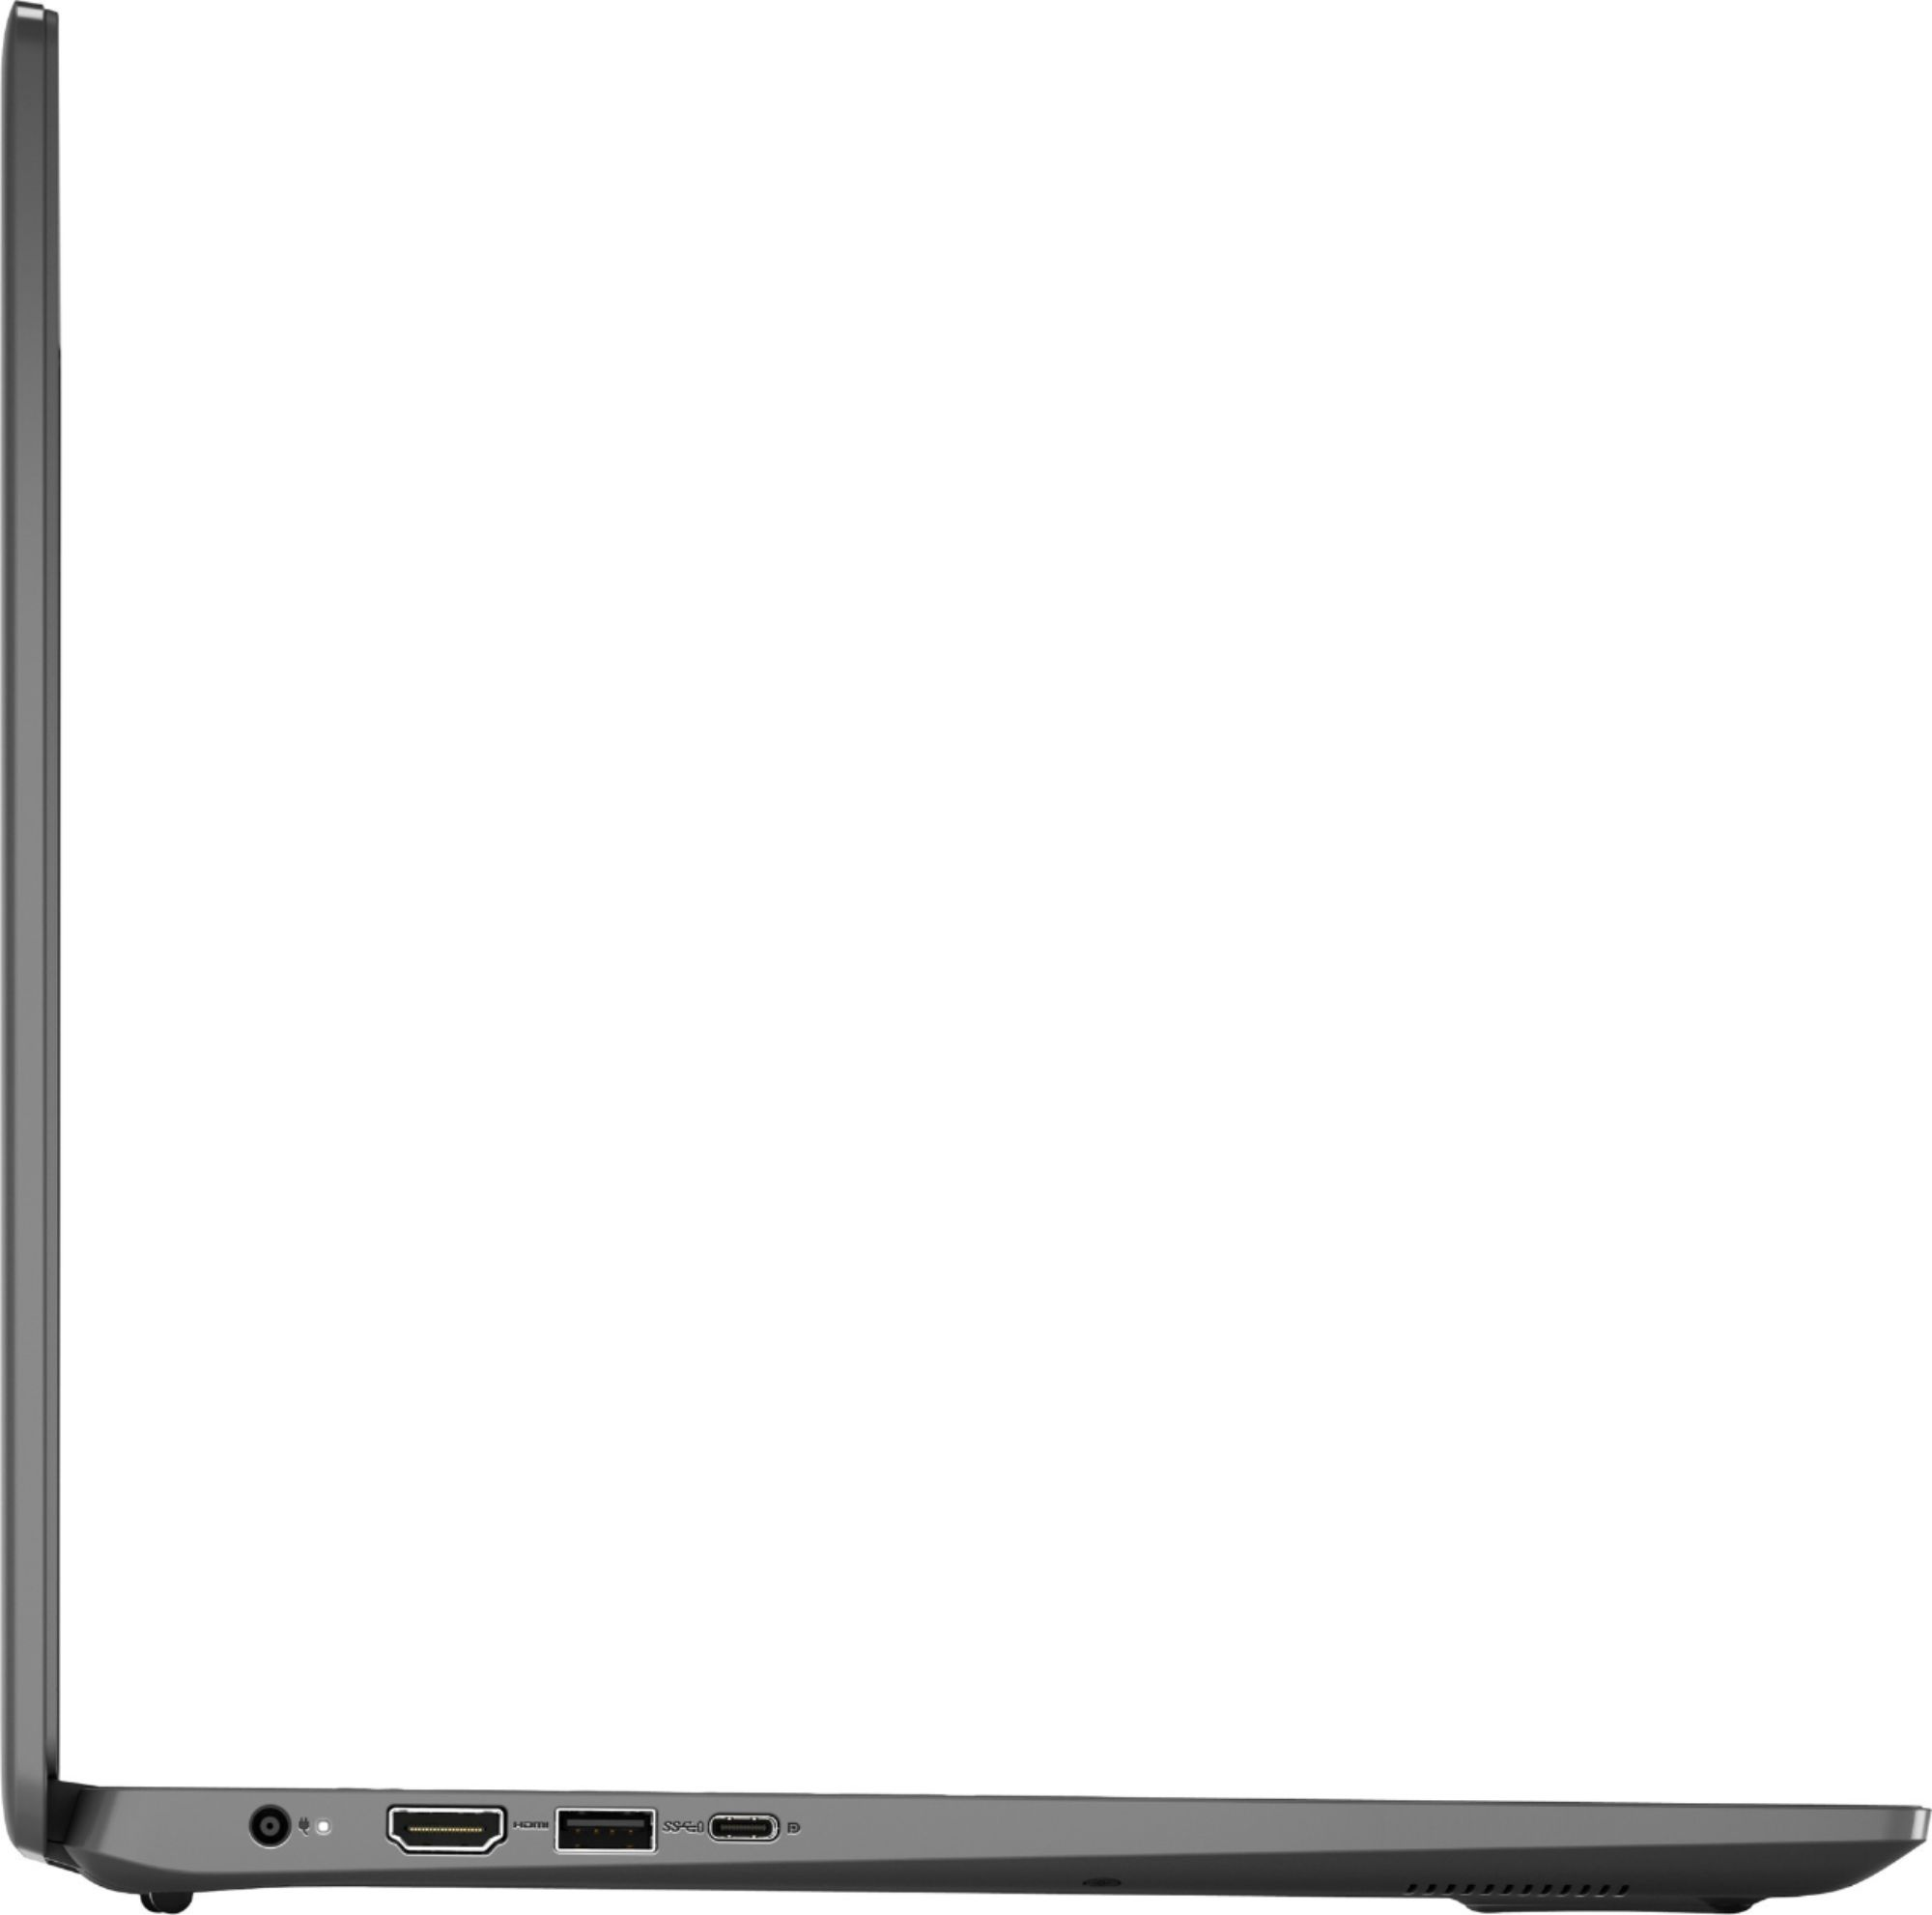 "Alt View Zoom 13. Dell - Latitude 3000 15.6"" Laptop - Intel Core i5 - 8 GB Memory - 500 GB HDD - Gray."